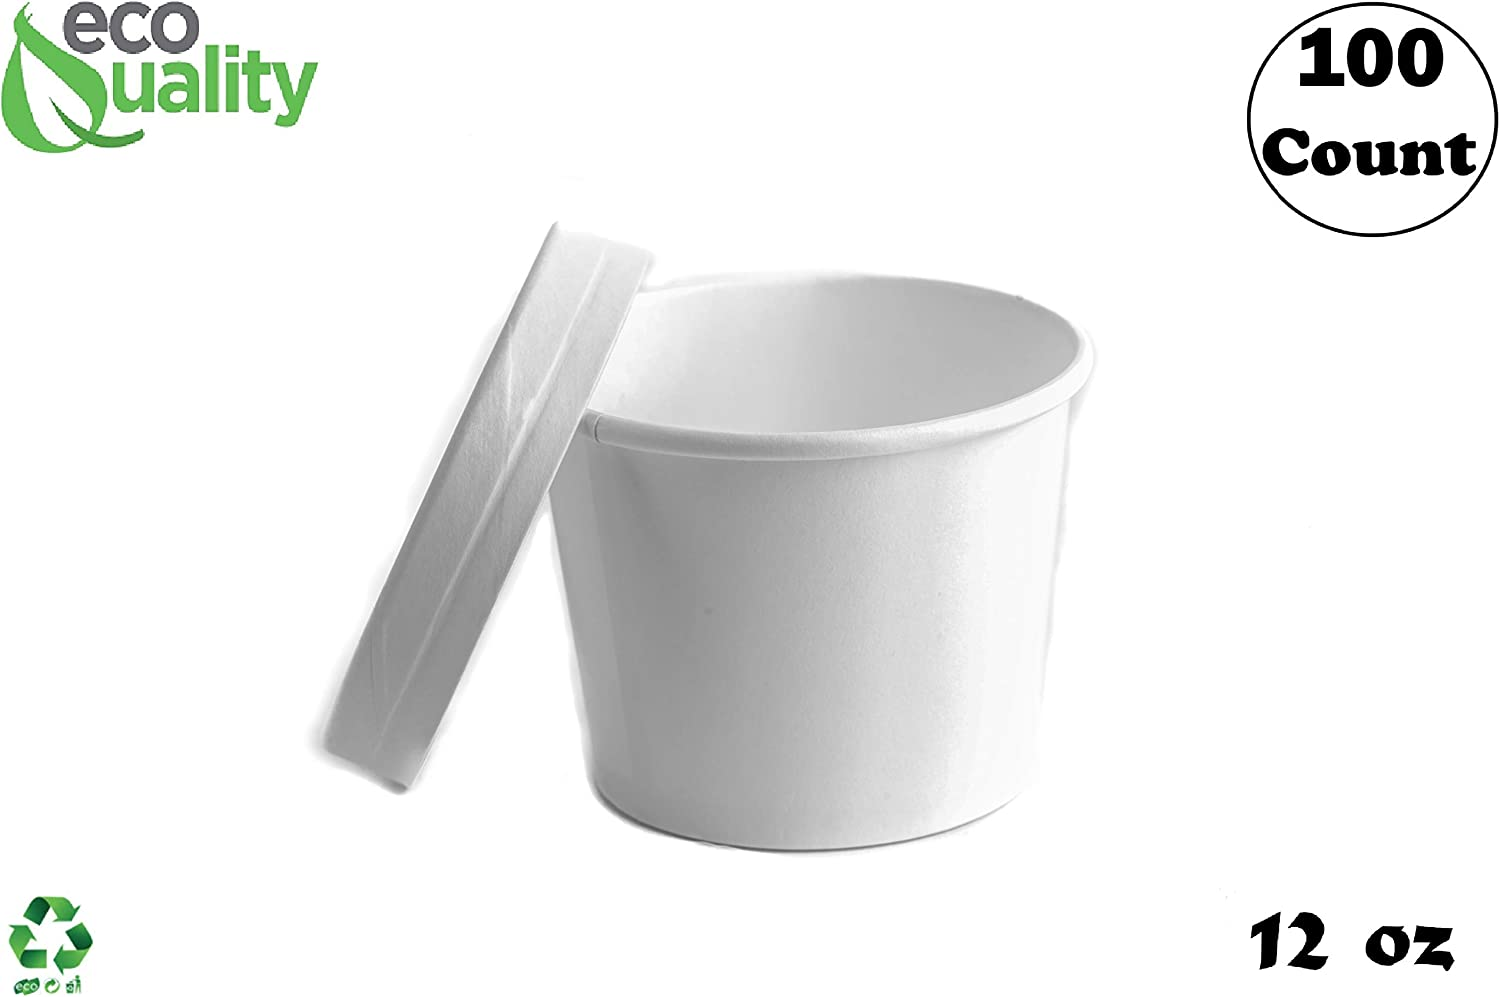 12 oz Disposable White Paper Soup Containers [100 Count] - Half Pint Ice Cream Containers, Frozen Yogurt Cups, Restaurant, Microwavable, Take Out, to Go Deli Containers, Recyclable